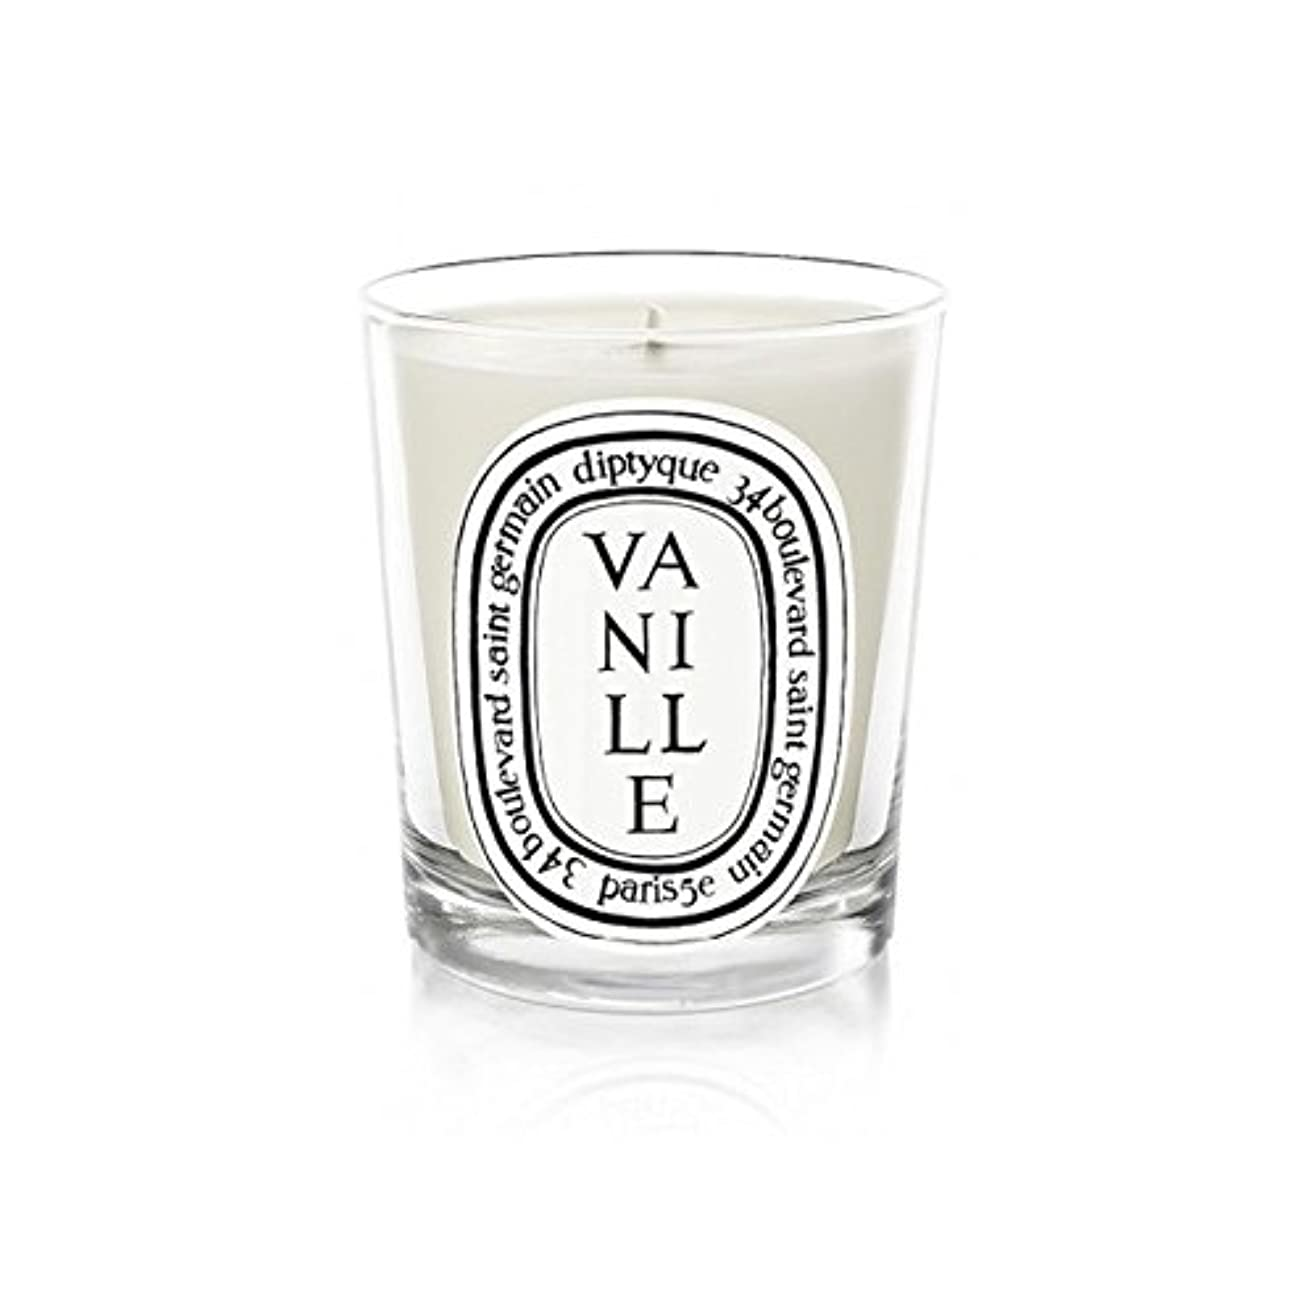 Diptyque Candle Vanille 70g (Pack of 6) - Diptyqueキャンドルバニラの70グラム (x6) [並行輸入品]